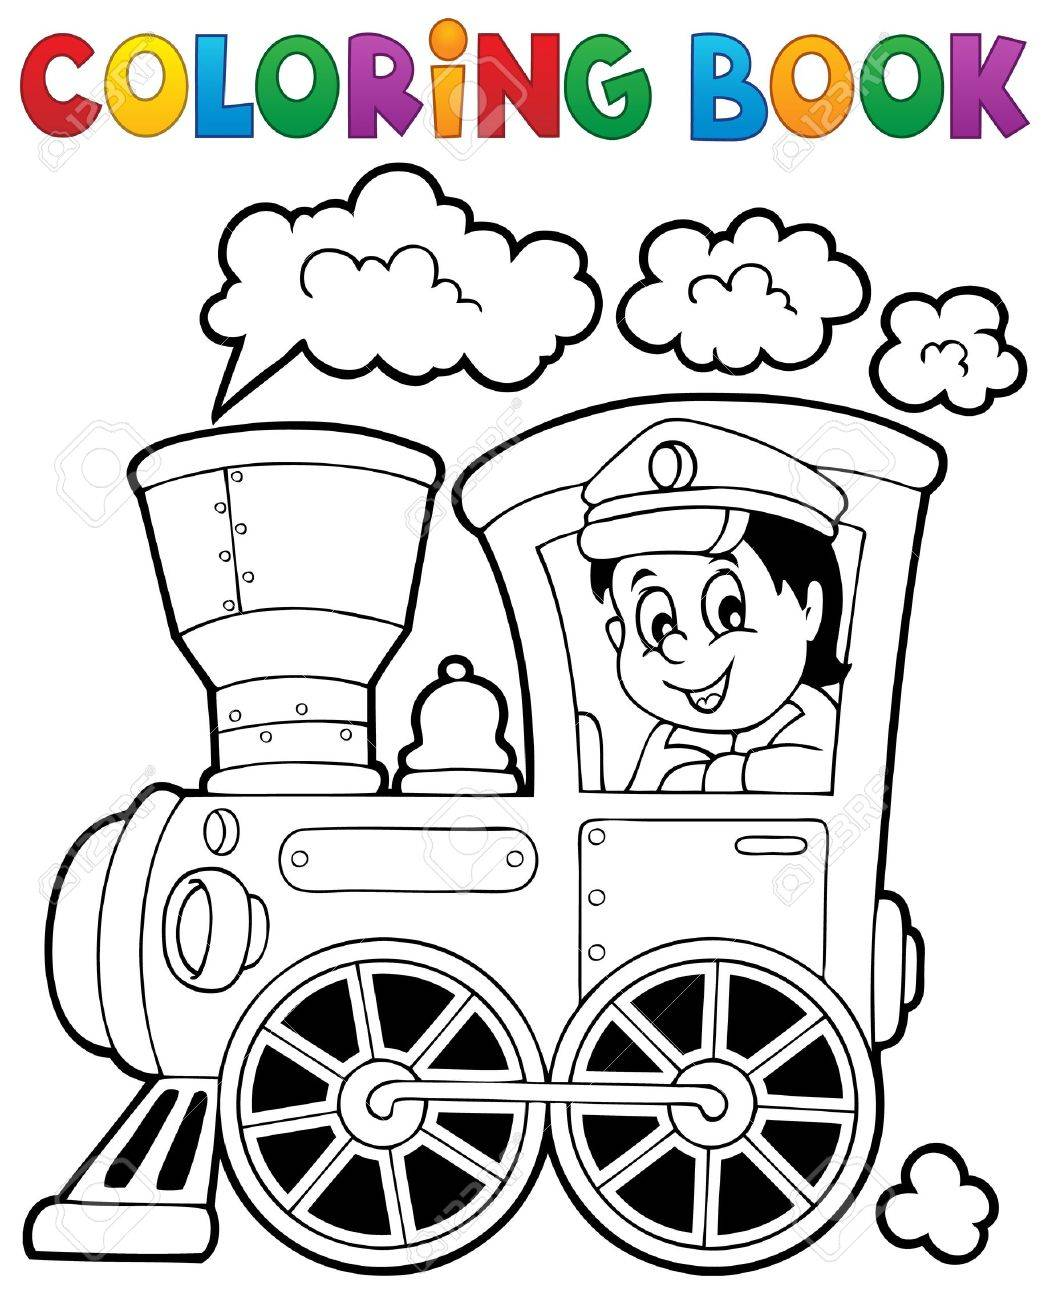 Coloring Book Train Theme Royalty Free Cliparts, Vectors, And Stock ...